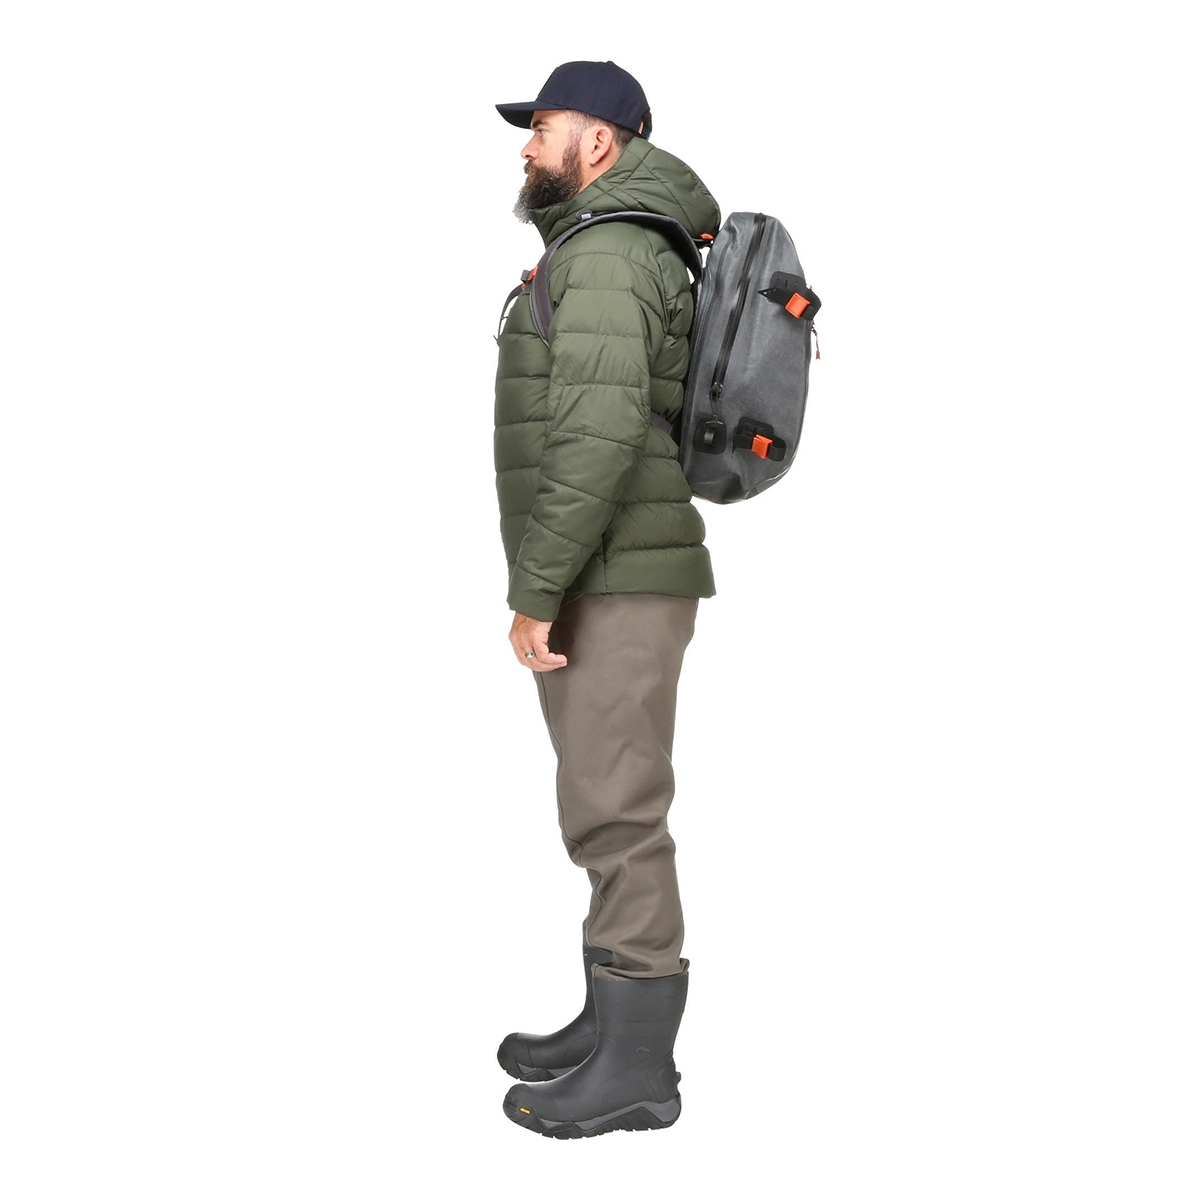 674eb237313b ... Image of Simms Dry Creek Z Backpack - 2018 Model - Pewter ...